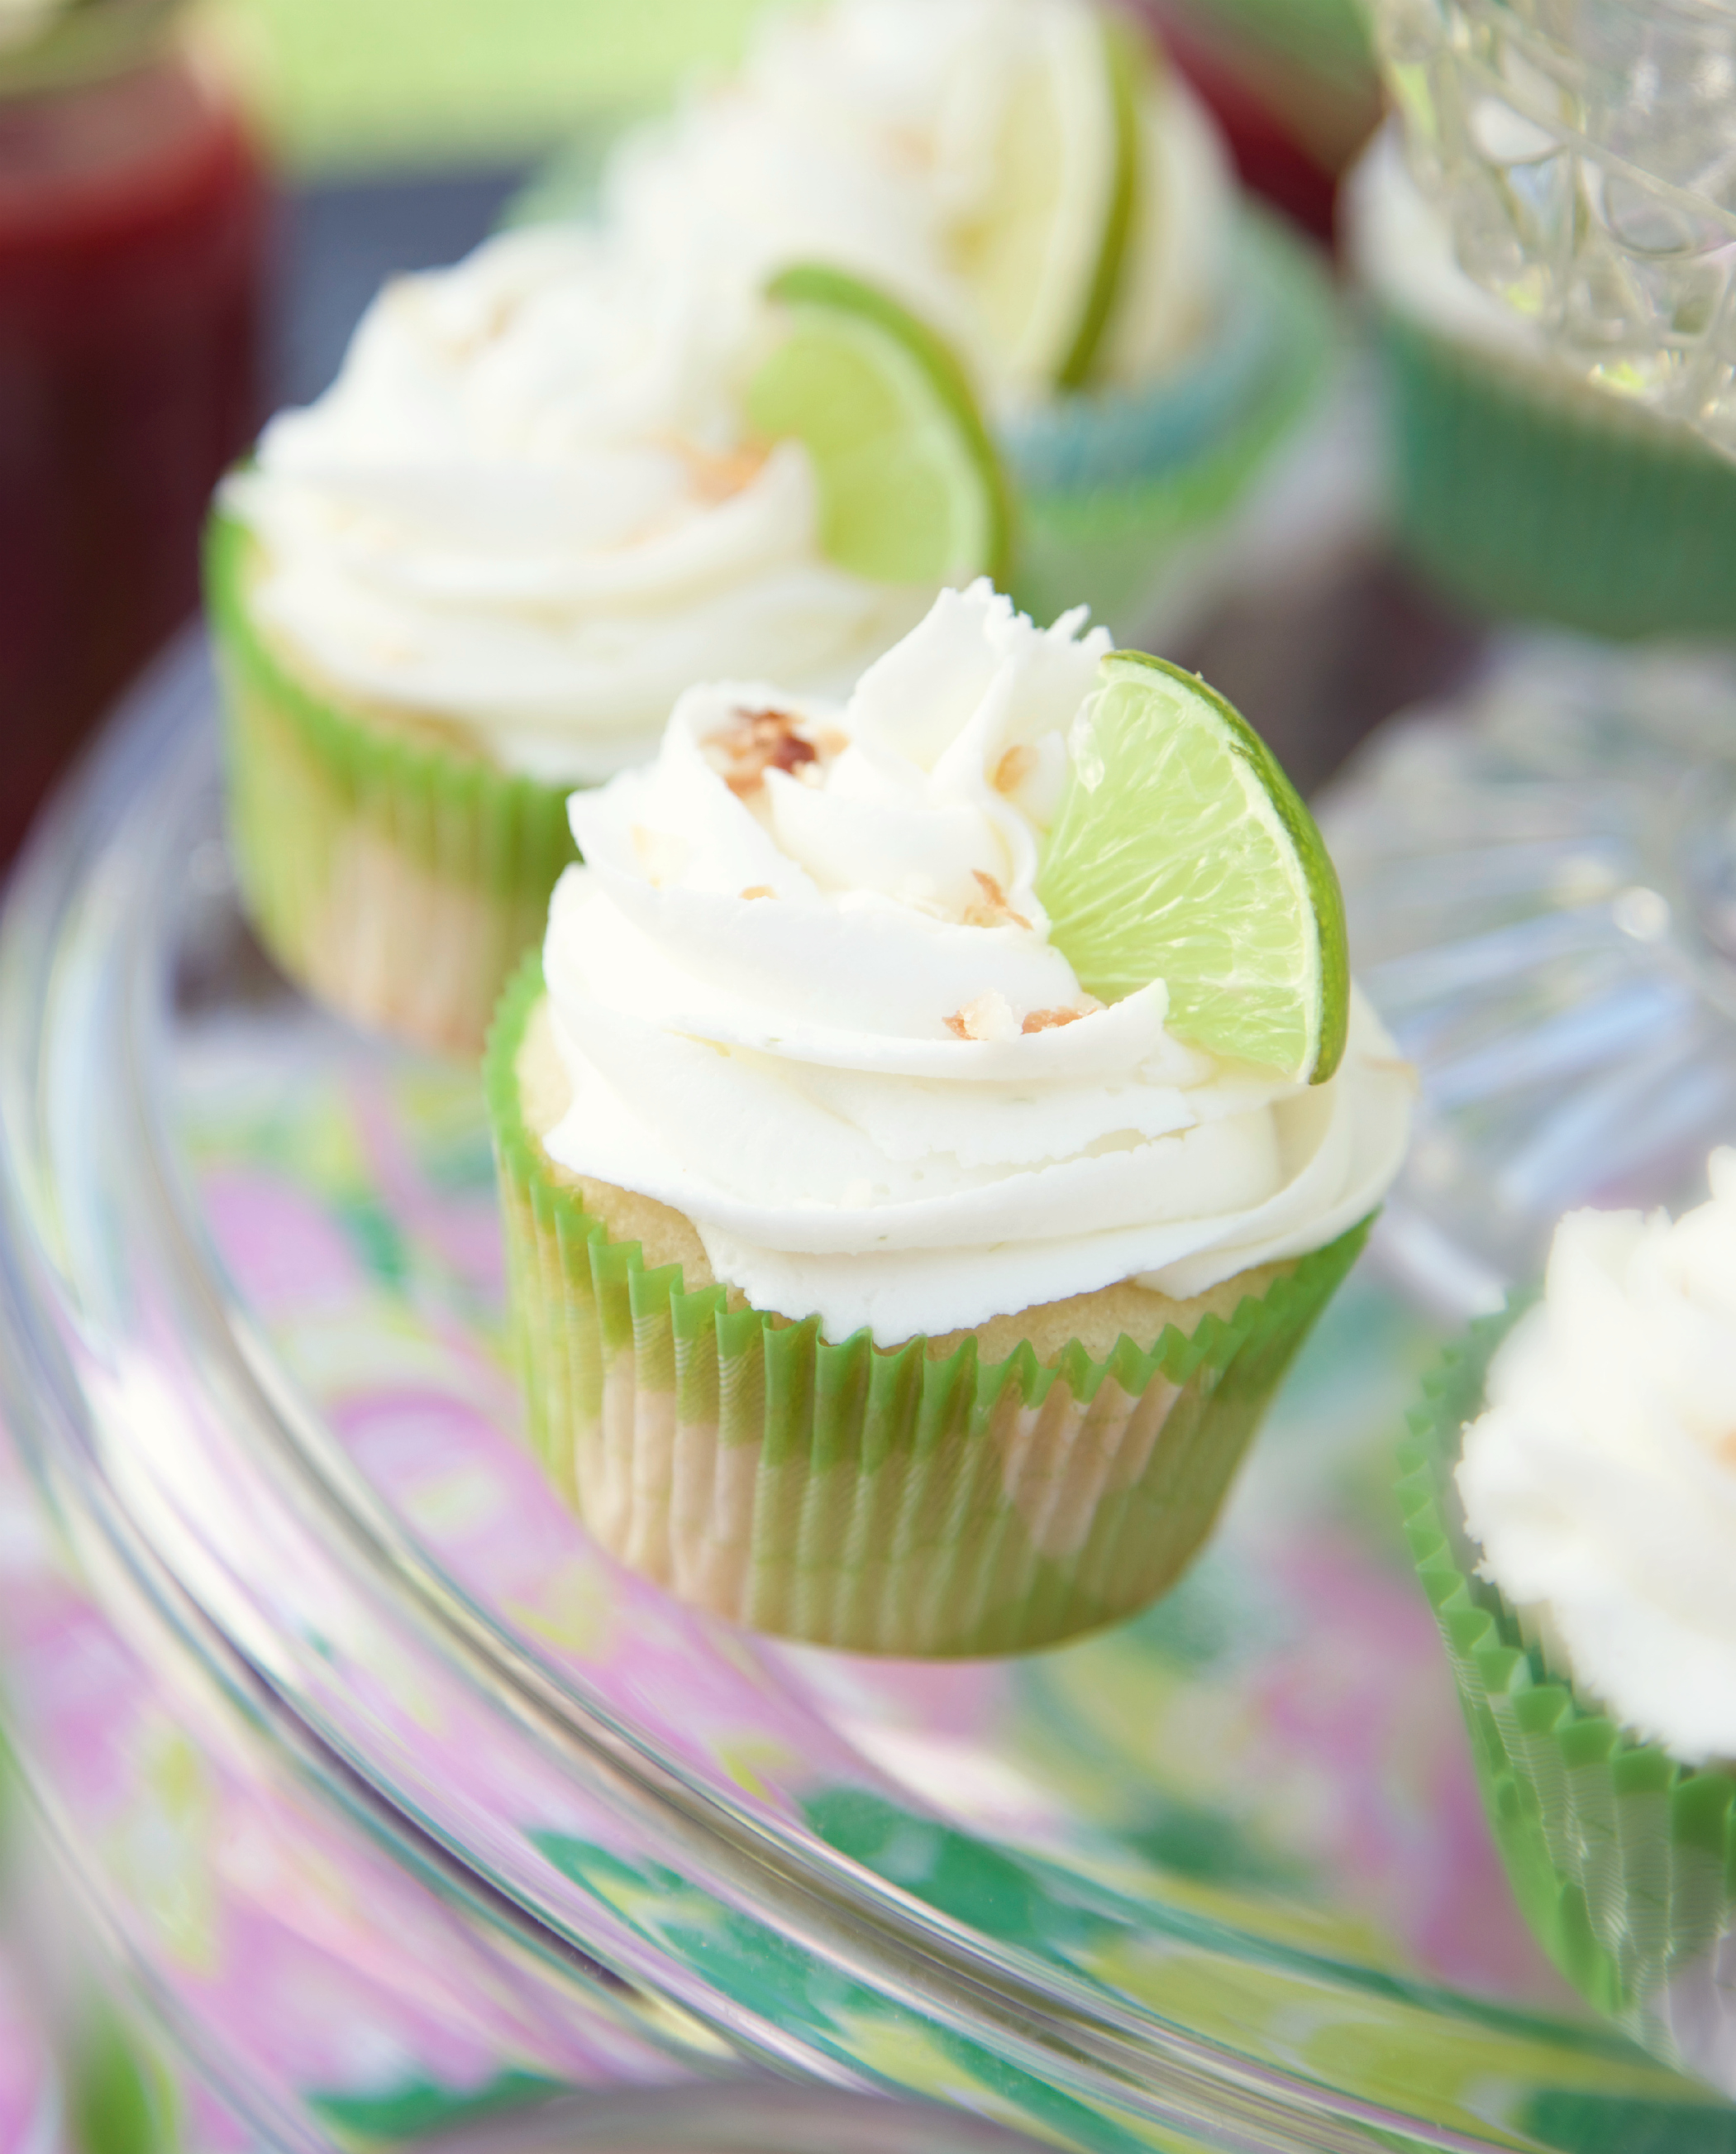 Coconut cupcakes, raspberry filling and lime buttercream. Recipe included!